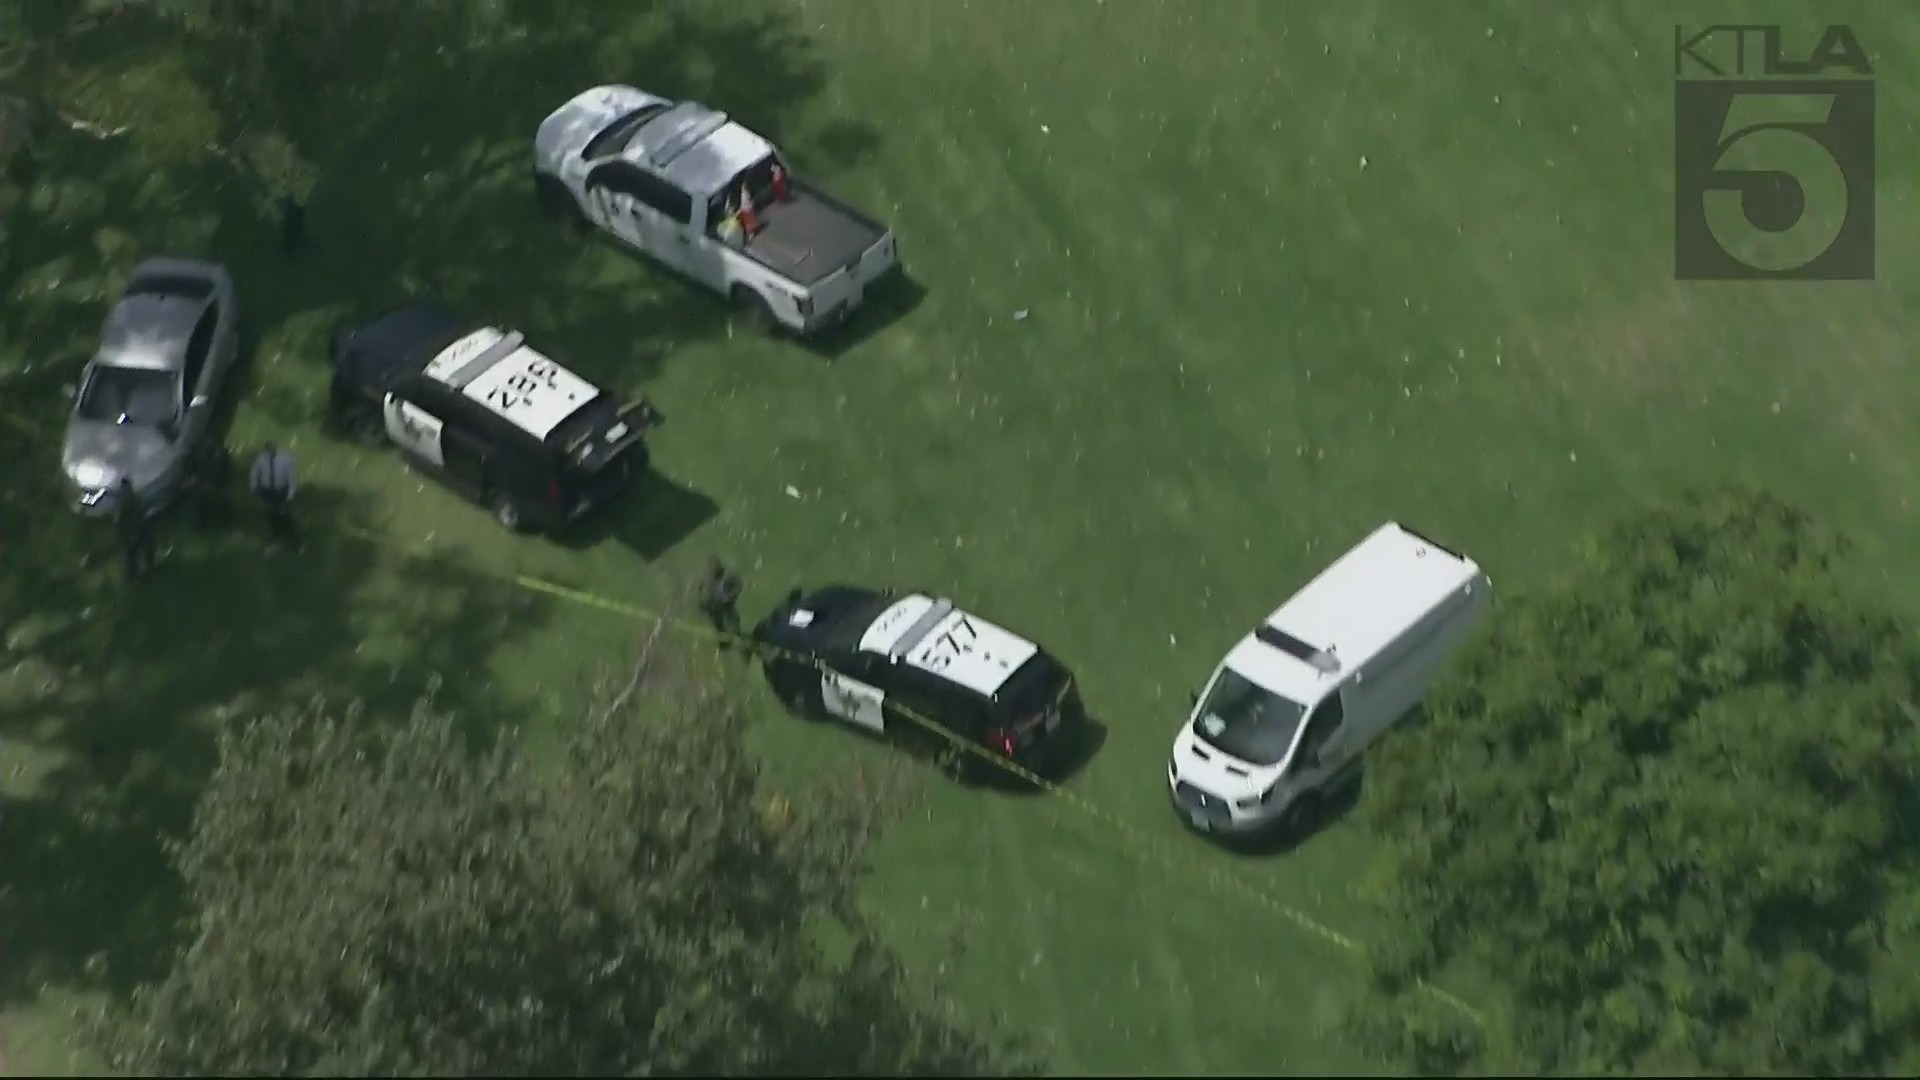 Authorities responded to Mile Square Regional Park in Fountain Valley, where a body was found in one of the lakes on July 23, 2021. (KTLA)